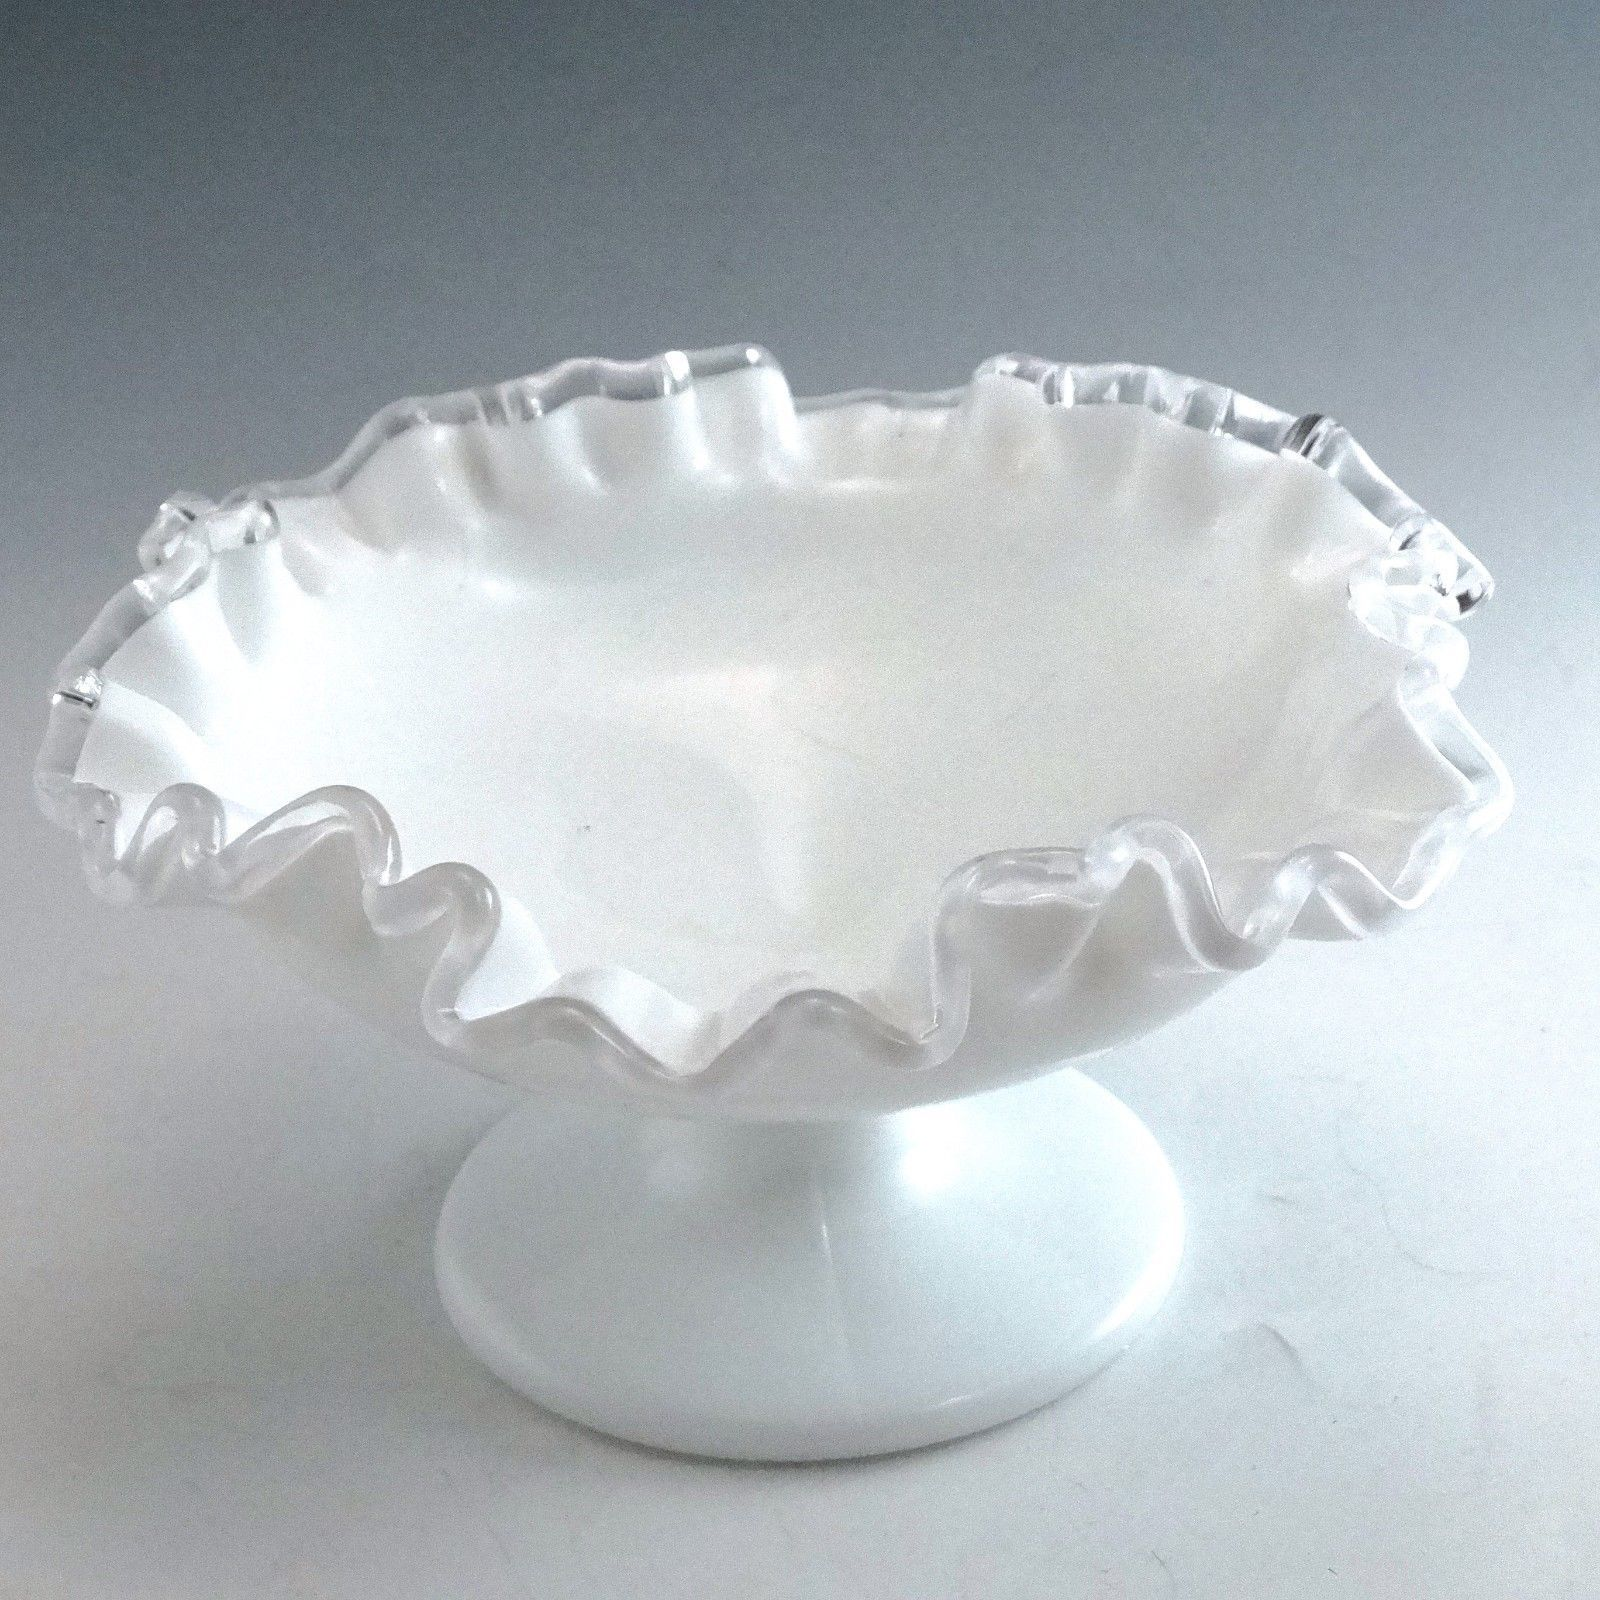 Vintage Fenton Glass Silver Crest Footed 7 inch Compote Bowl White Milk Glass  image 2